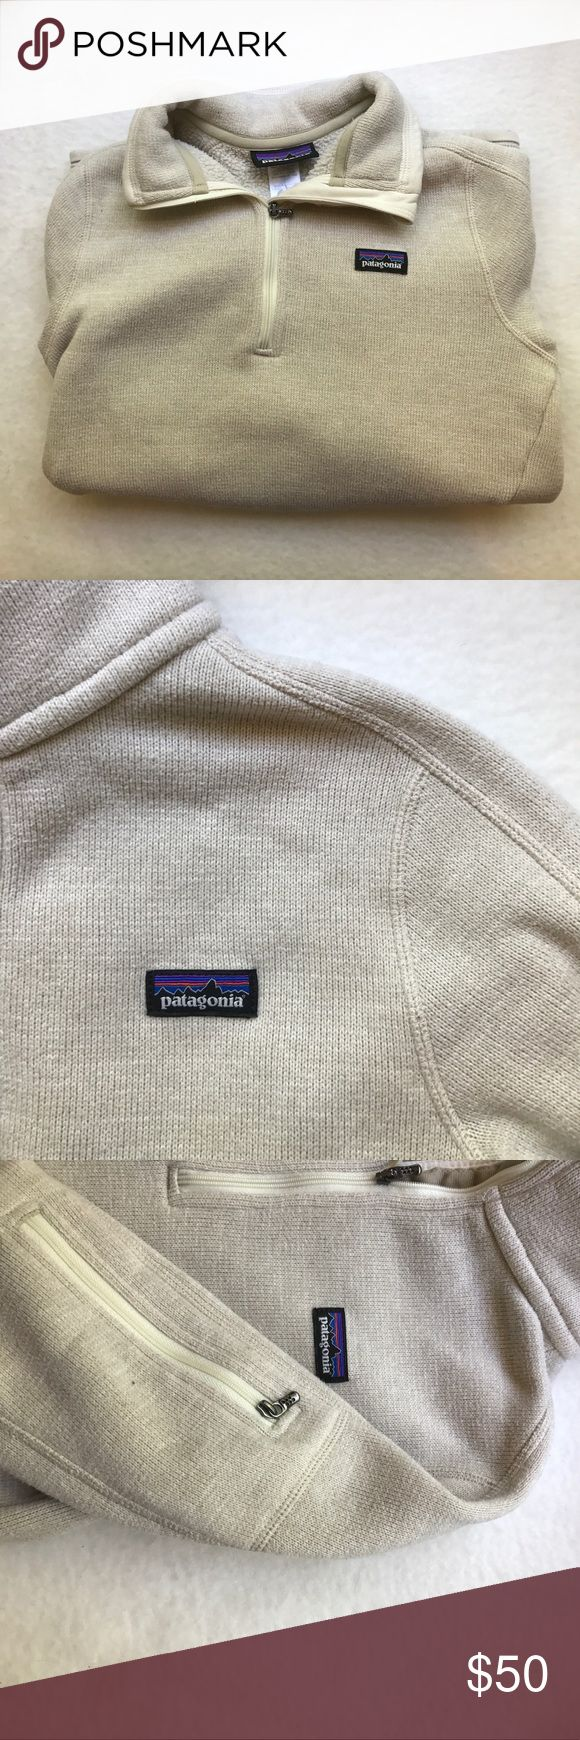 Patagonia Quarter Zip Good condition besides the stains on both arms. Super warm and comfortable! Patagonia Sweaters